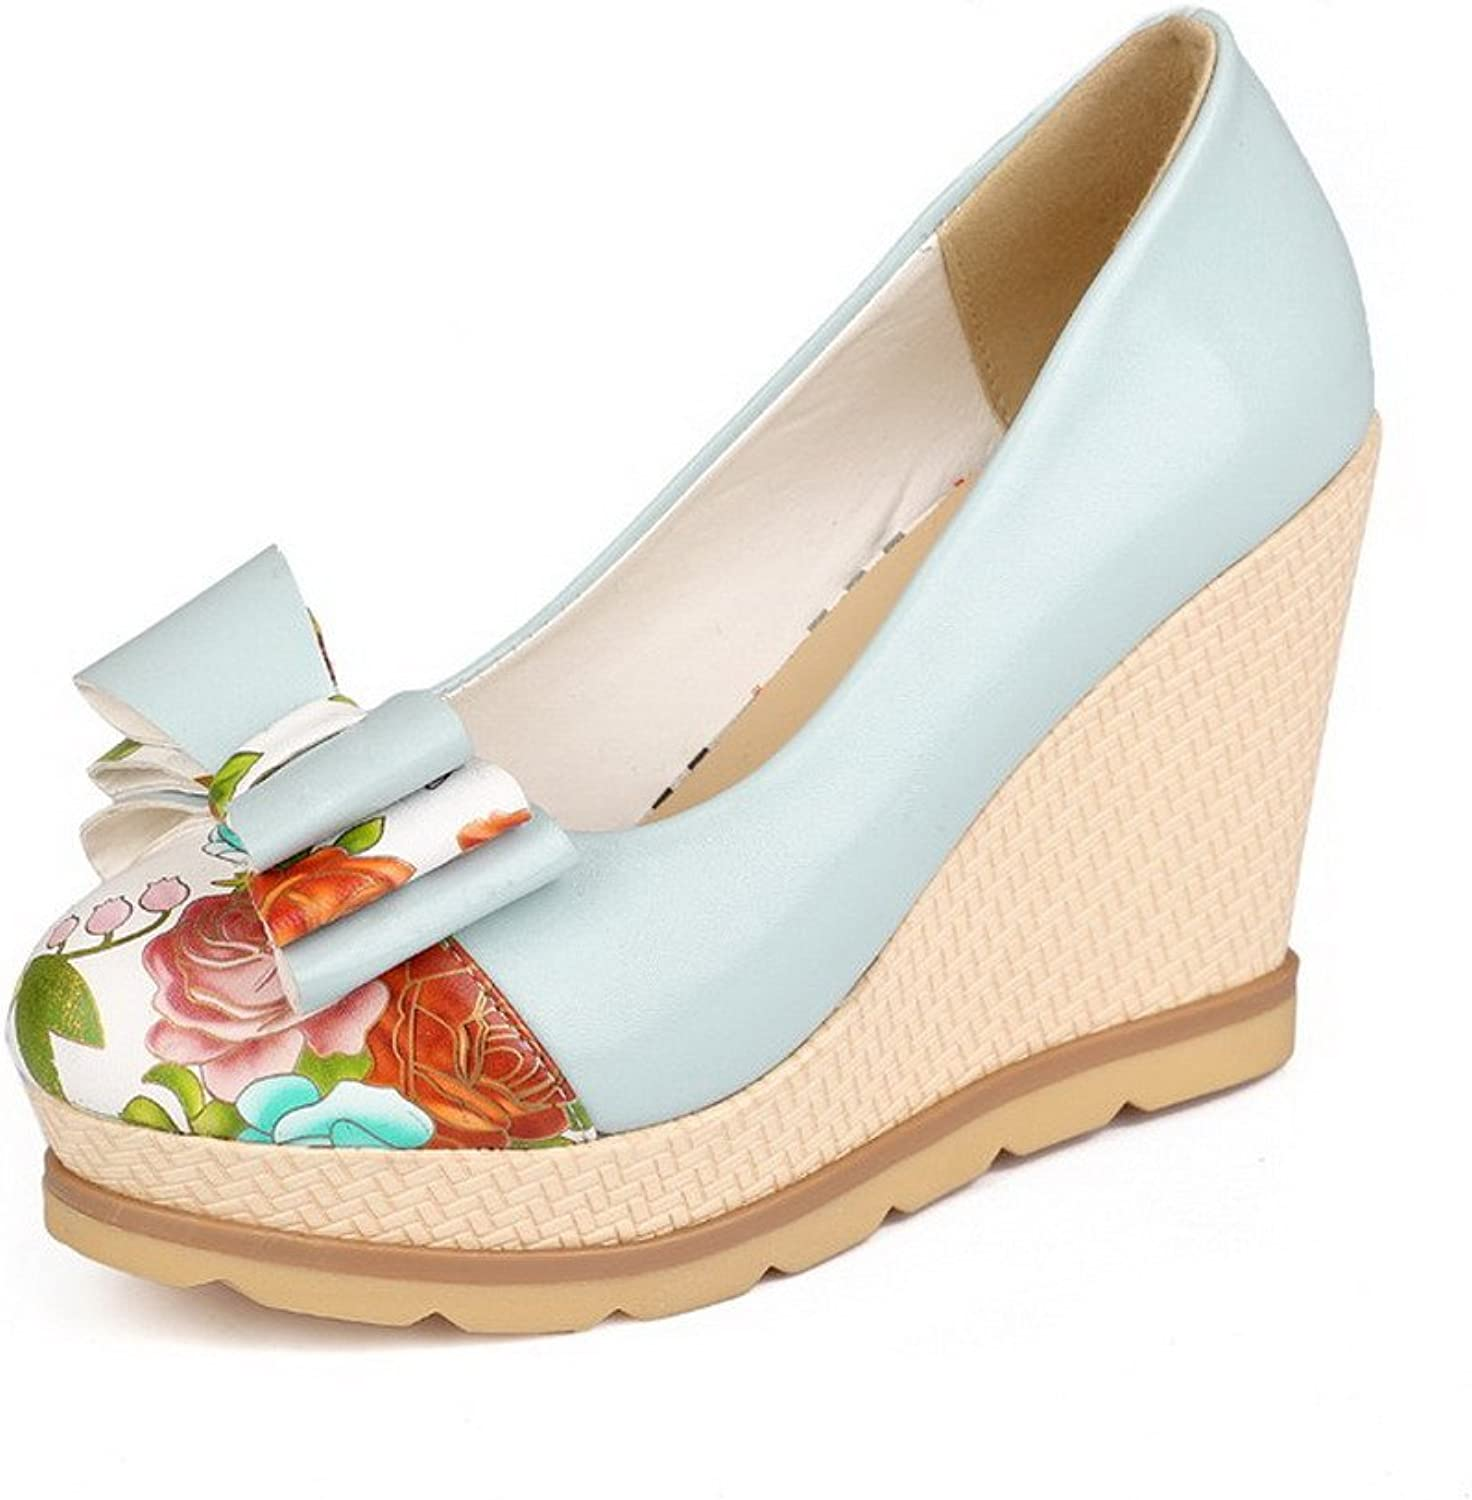 WeenFashion Women's PU Assorted color Pull-on Round Closed Toe High-Heels Pumps-shoes